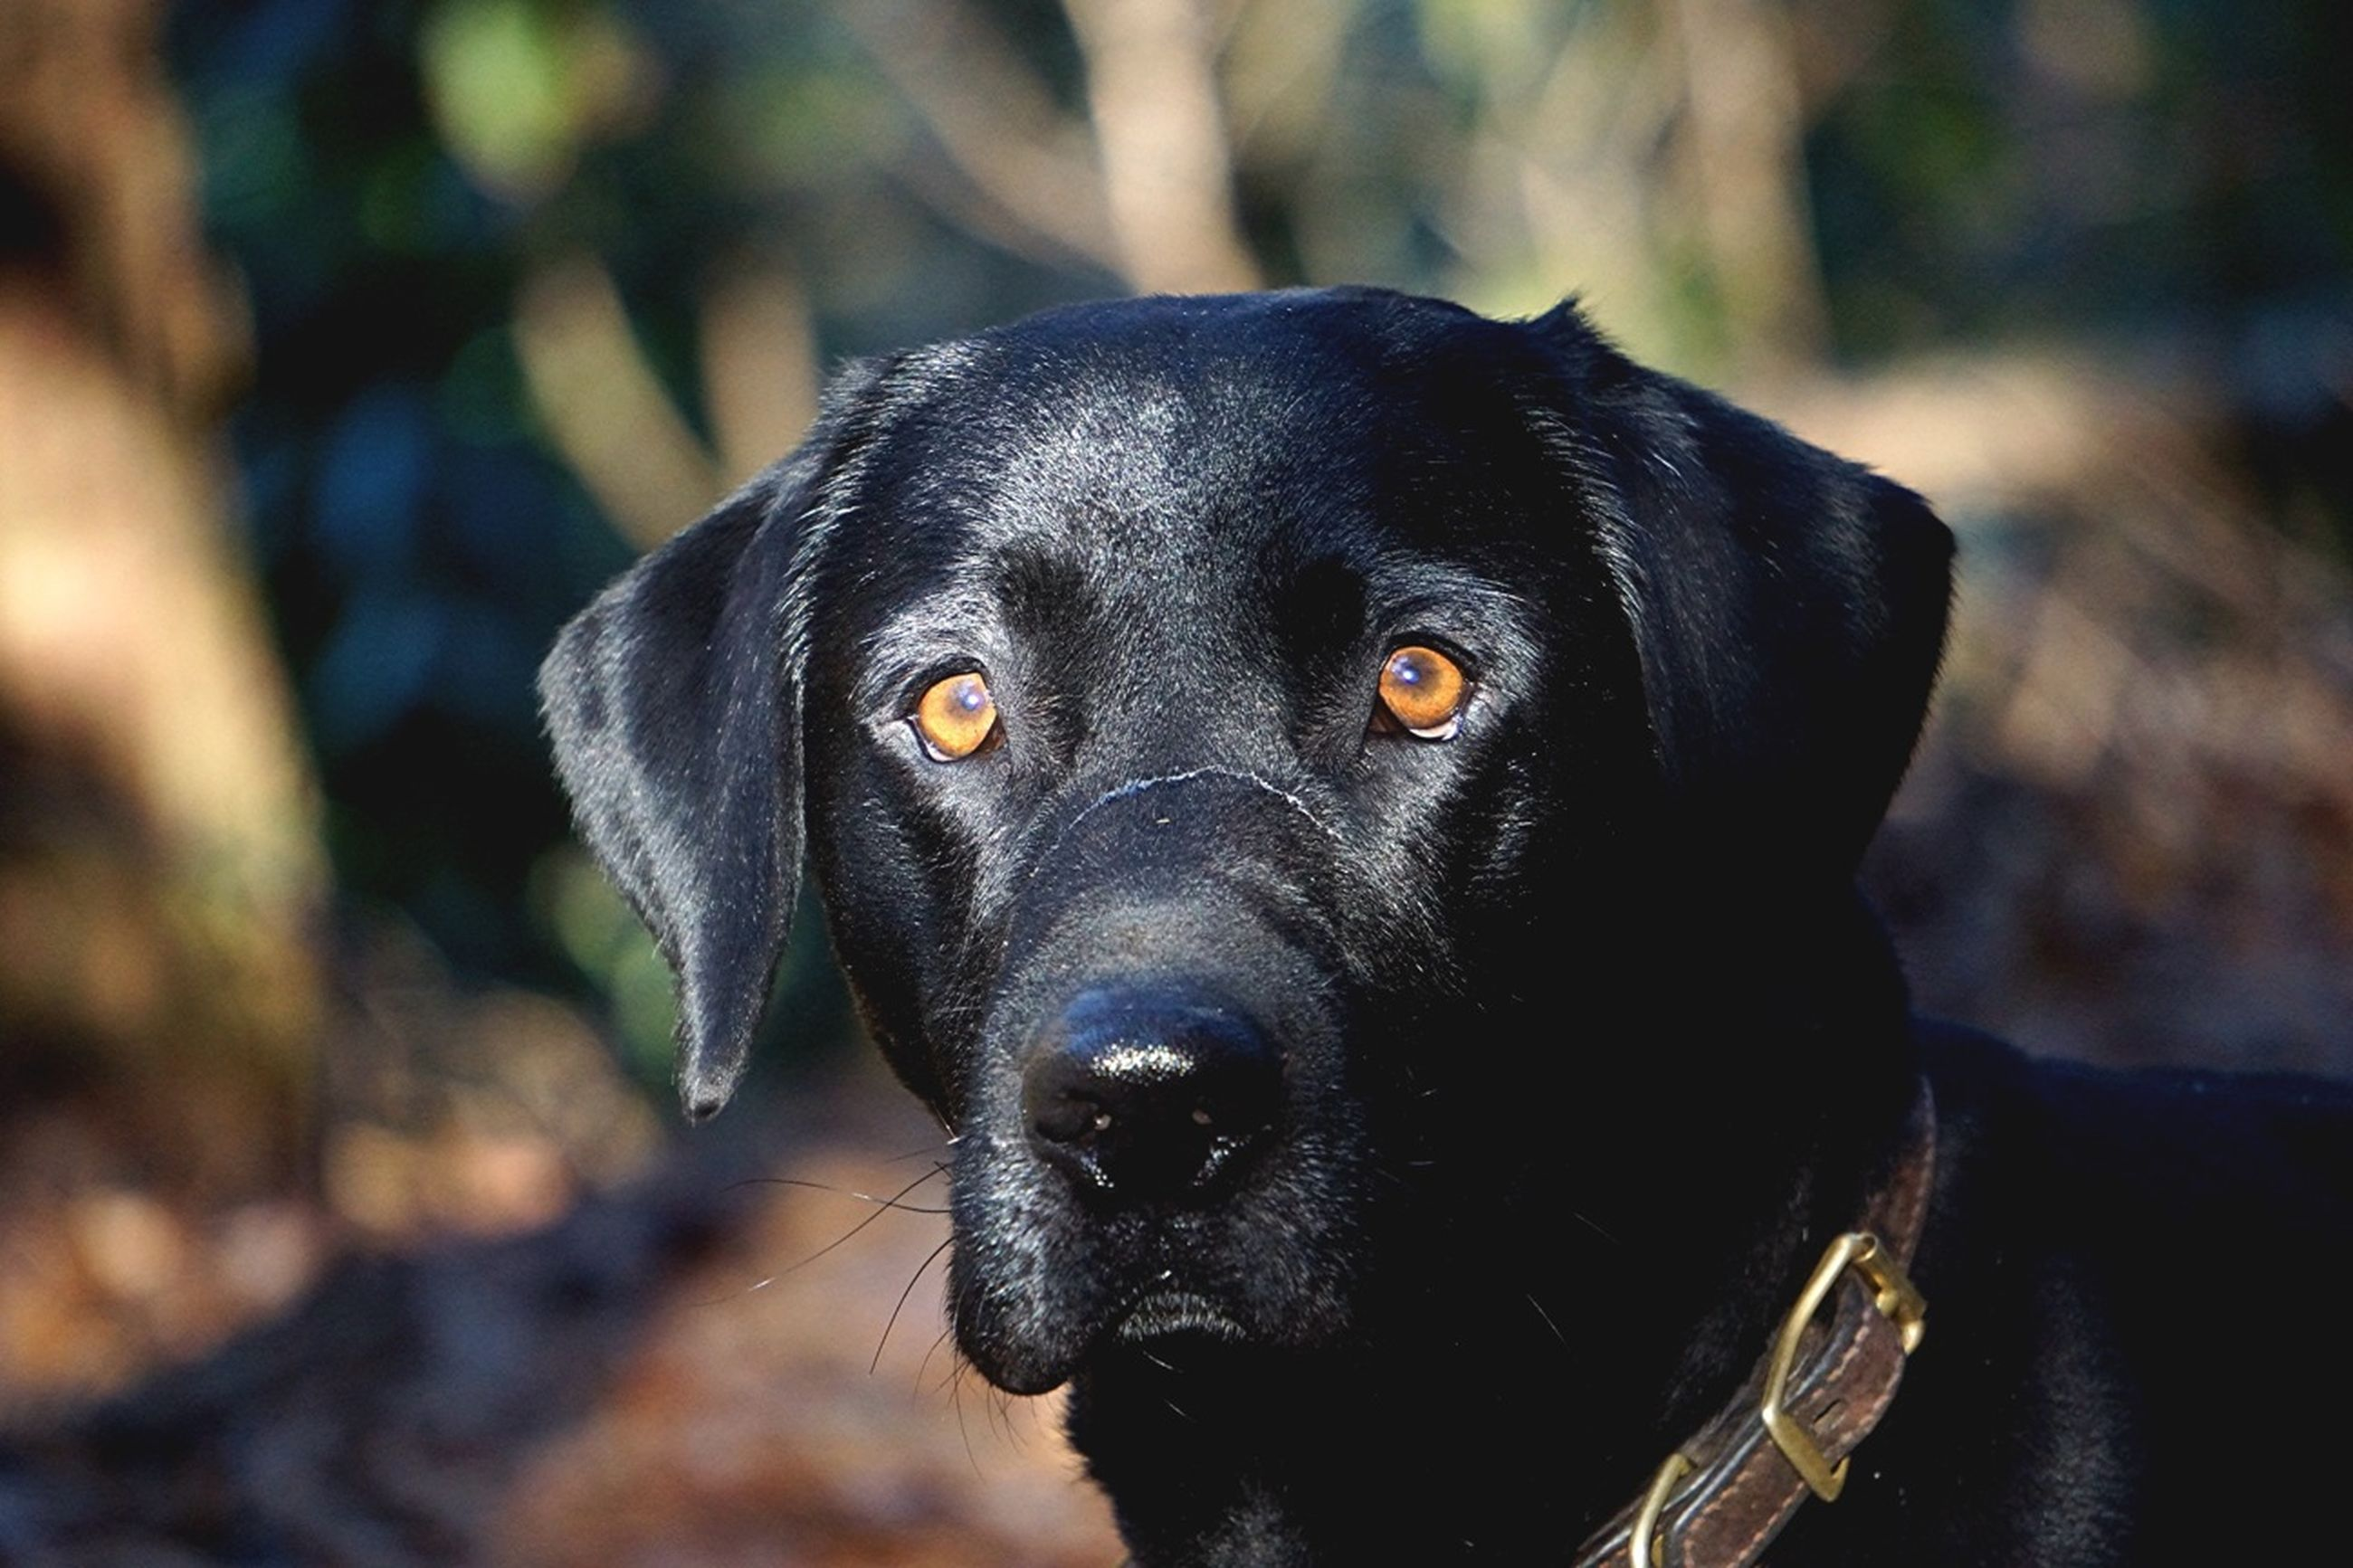 dog, pets, animal themes, one animal, domestic animals, mammal, black color, looking at camera, portrait, focus on foreground, close-up, animal head, black, animal body part, selective focus, no people, pet collar, zoology, day, front view